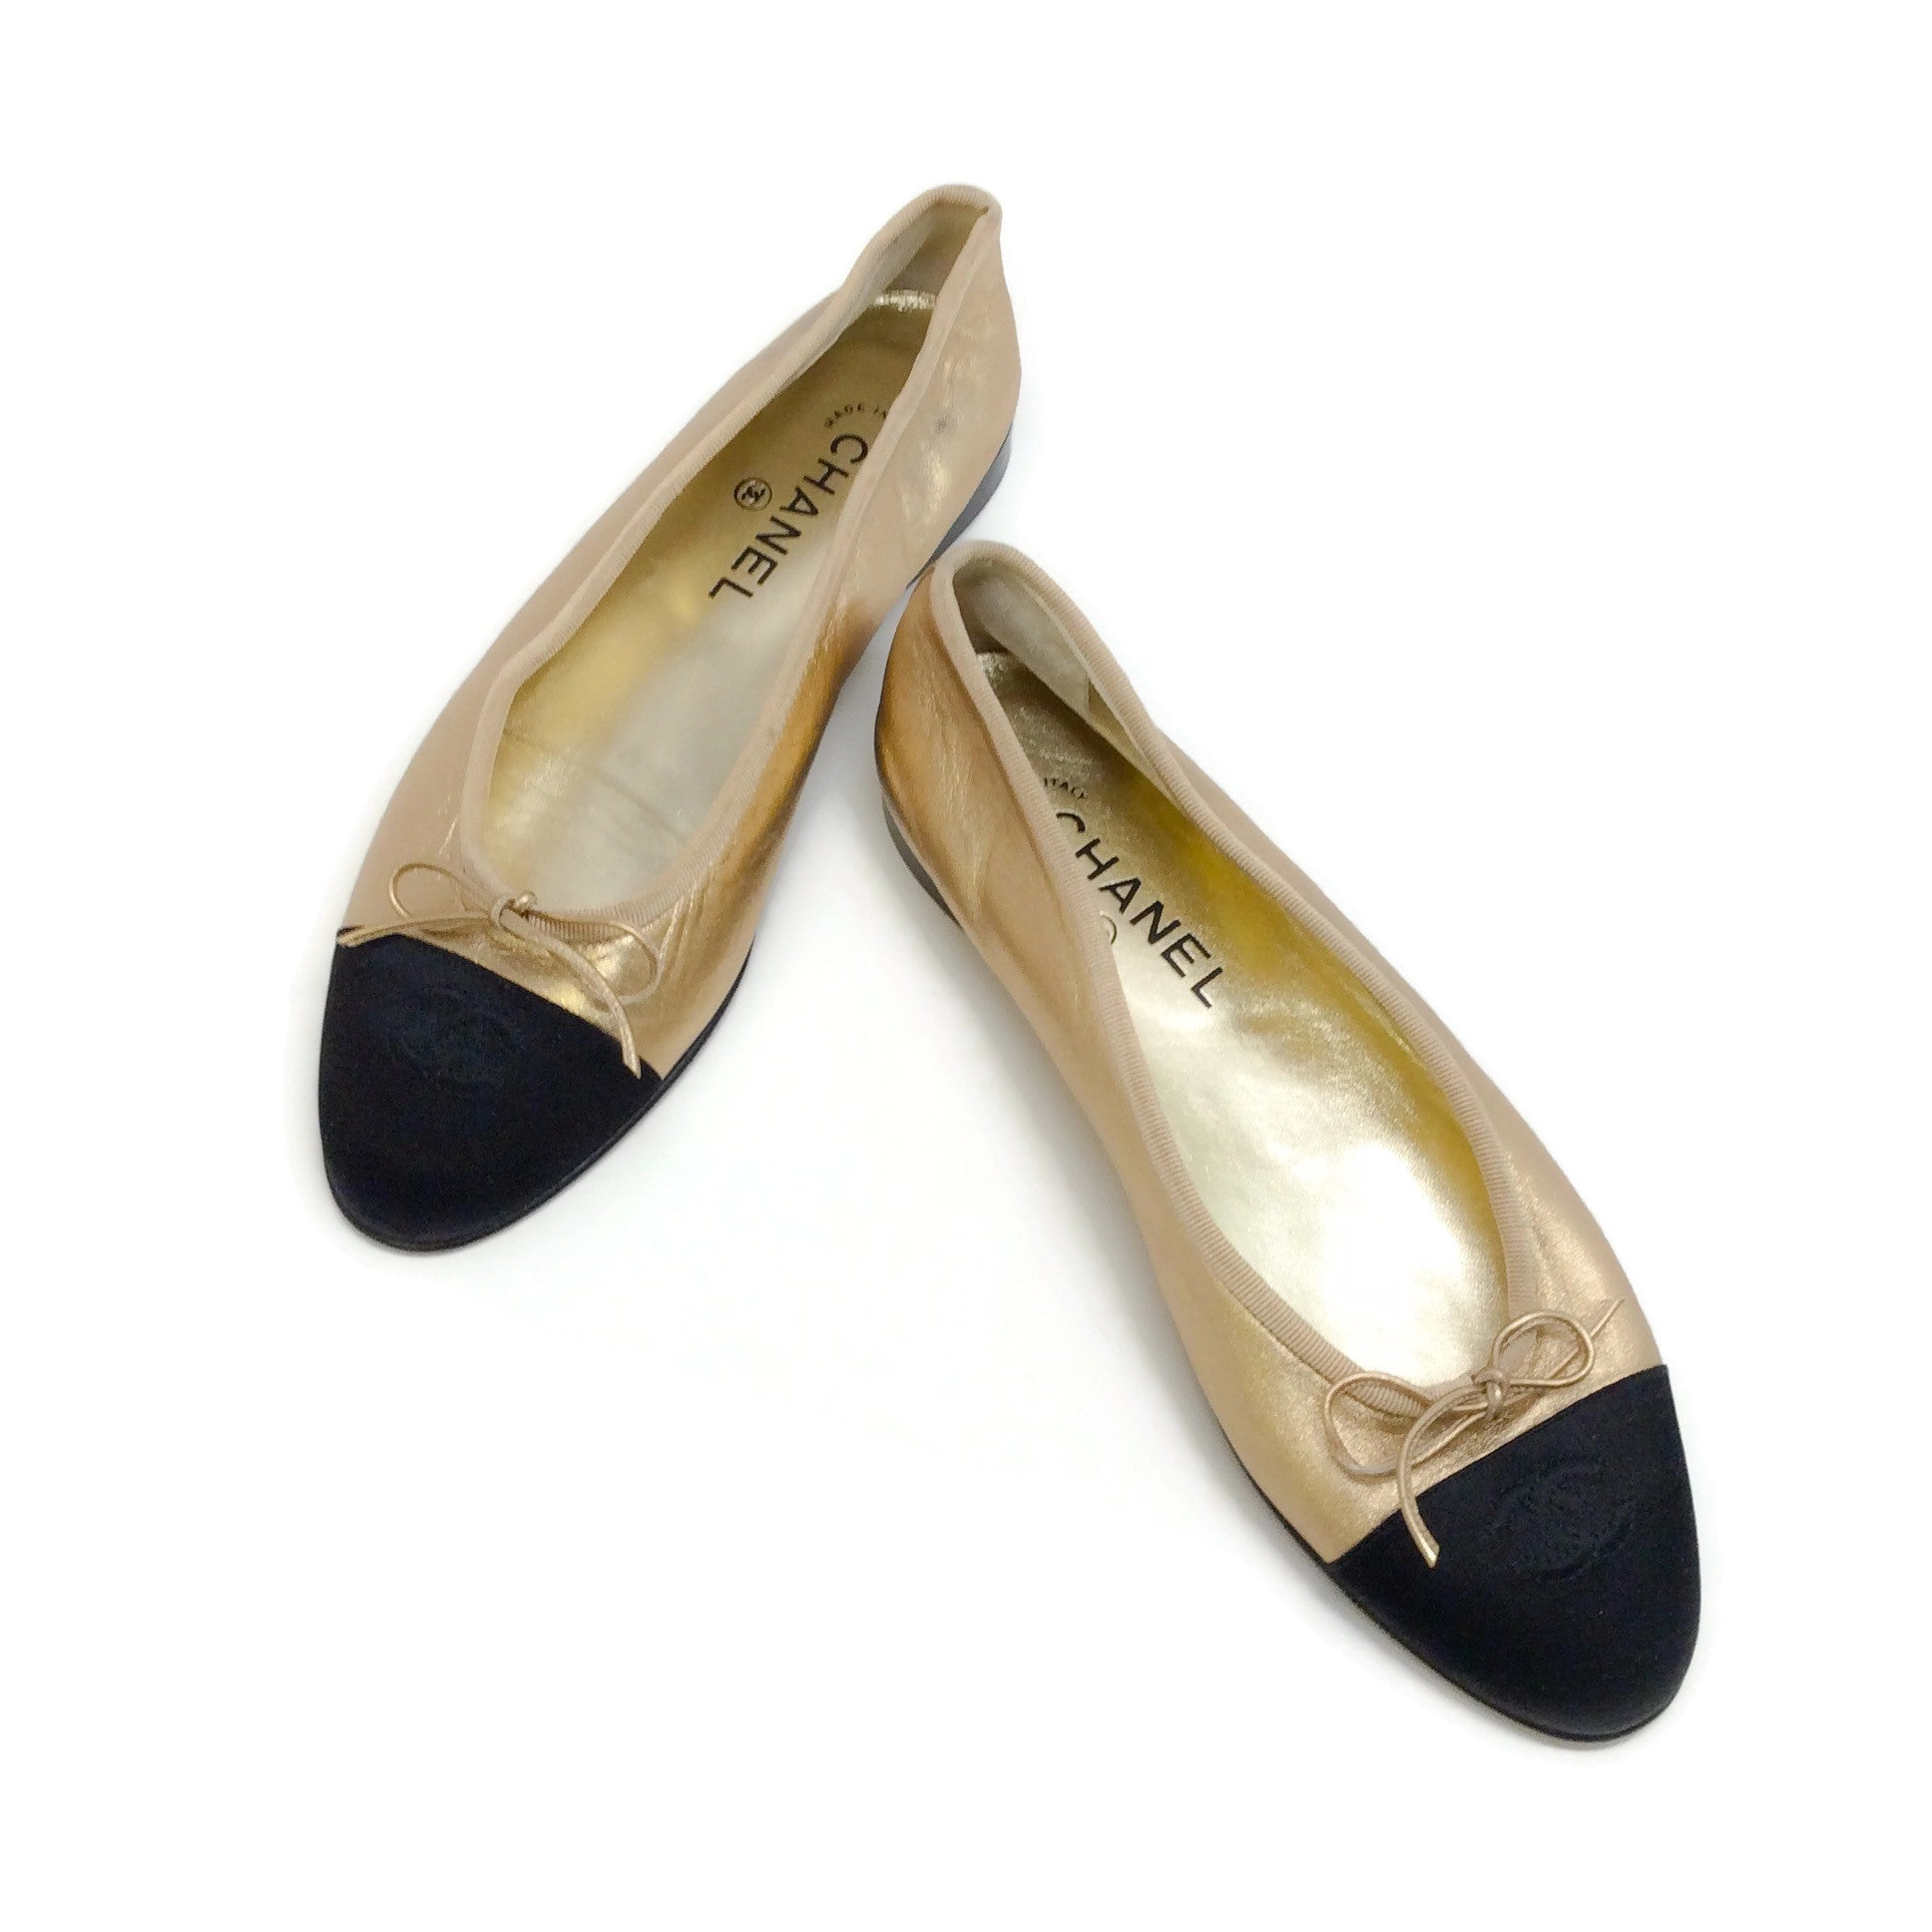 Chanel Gold / Black Logo Ballet Flats